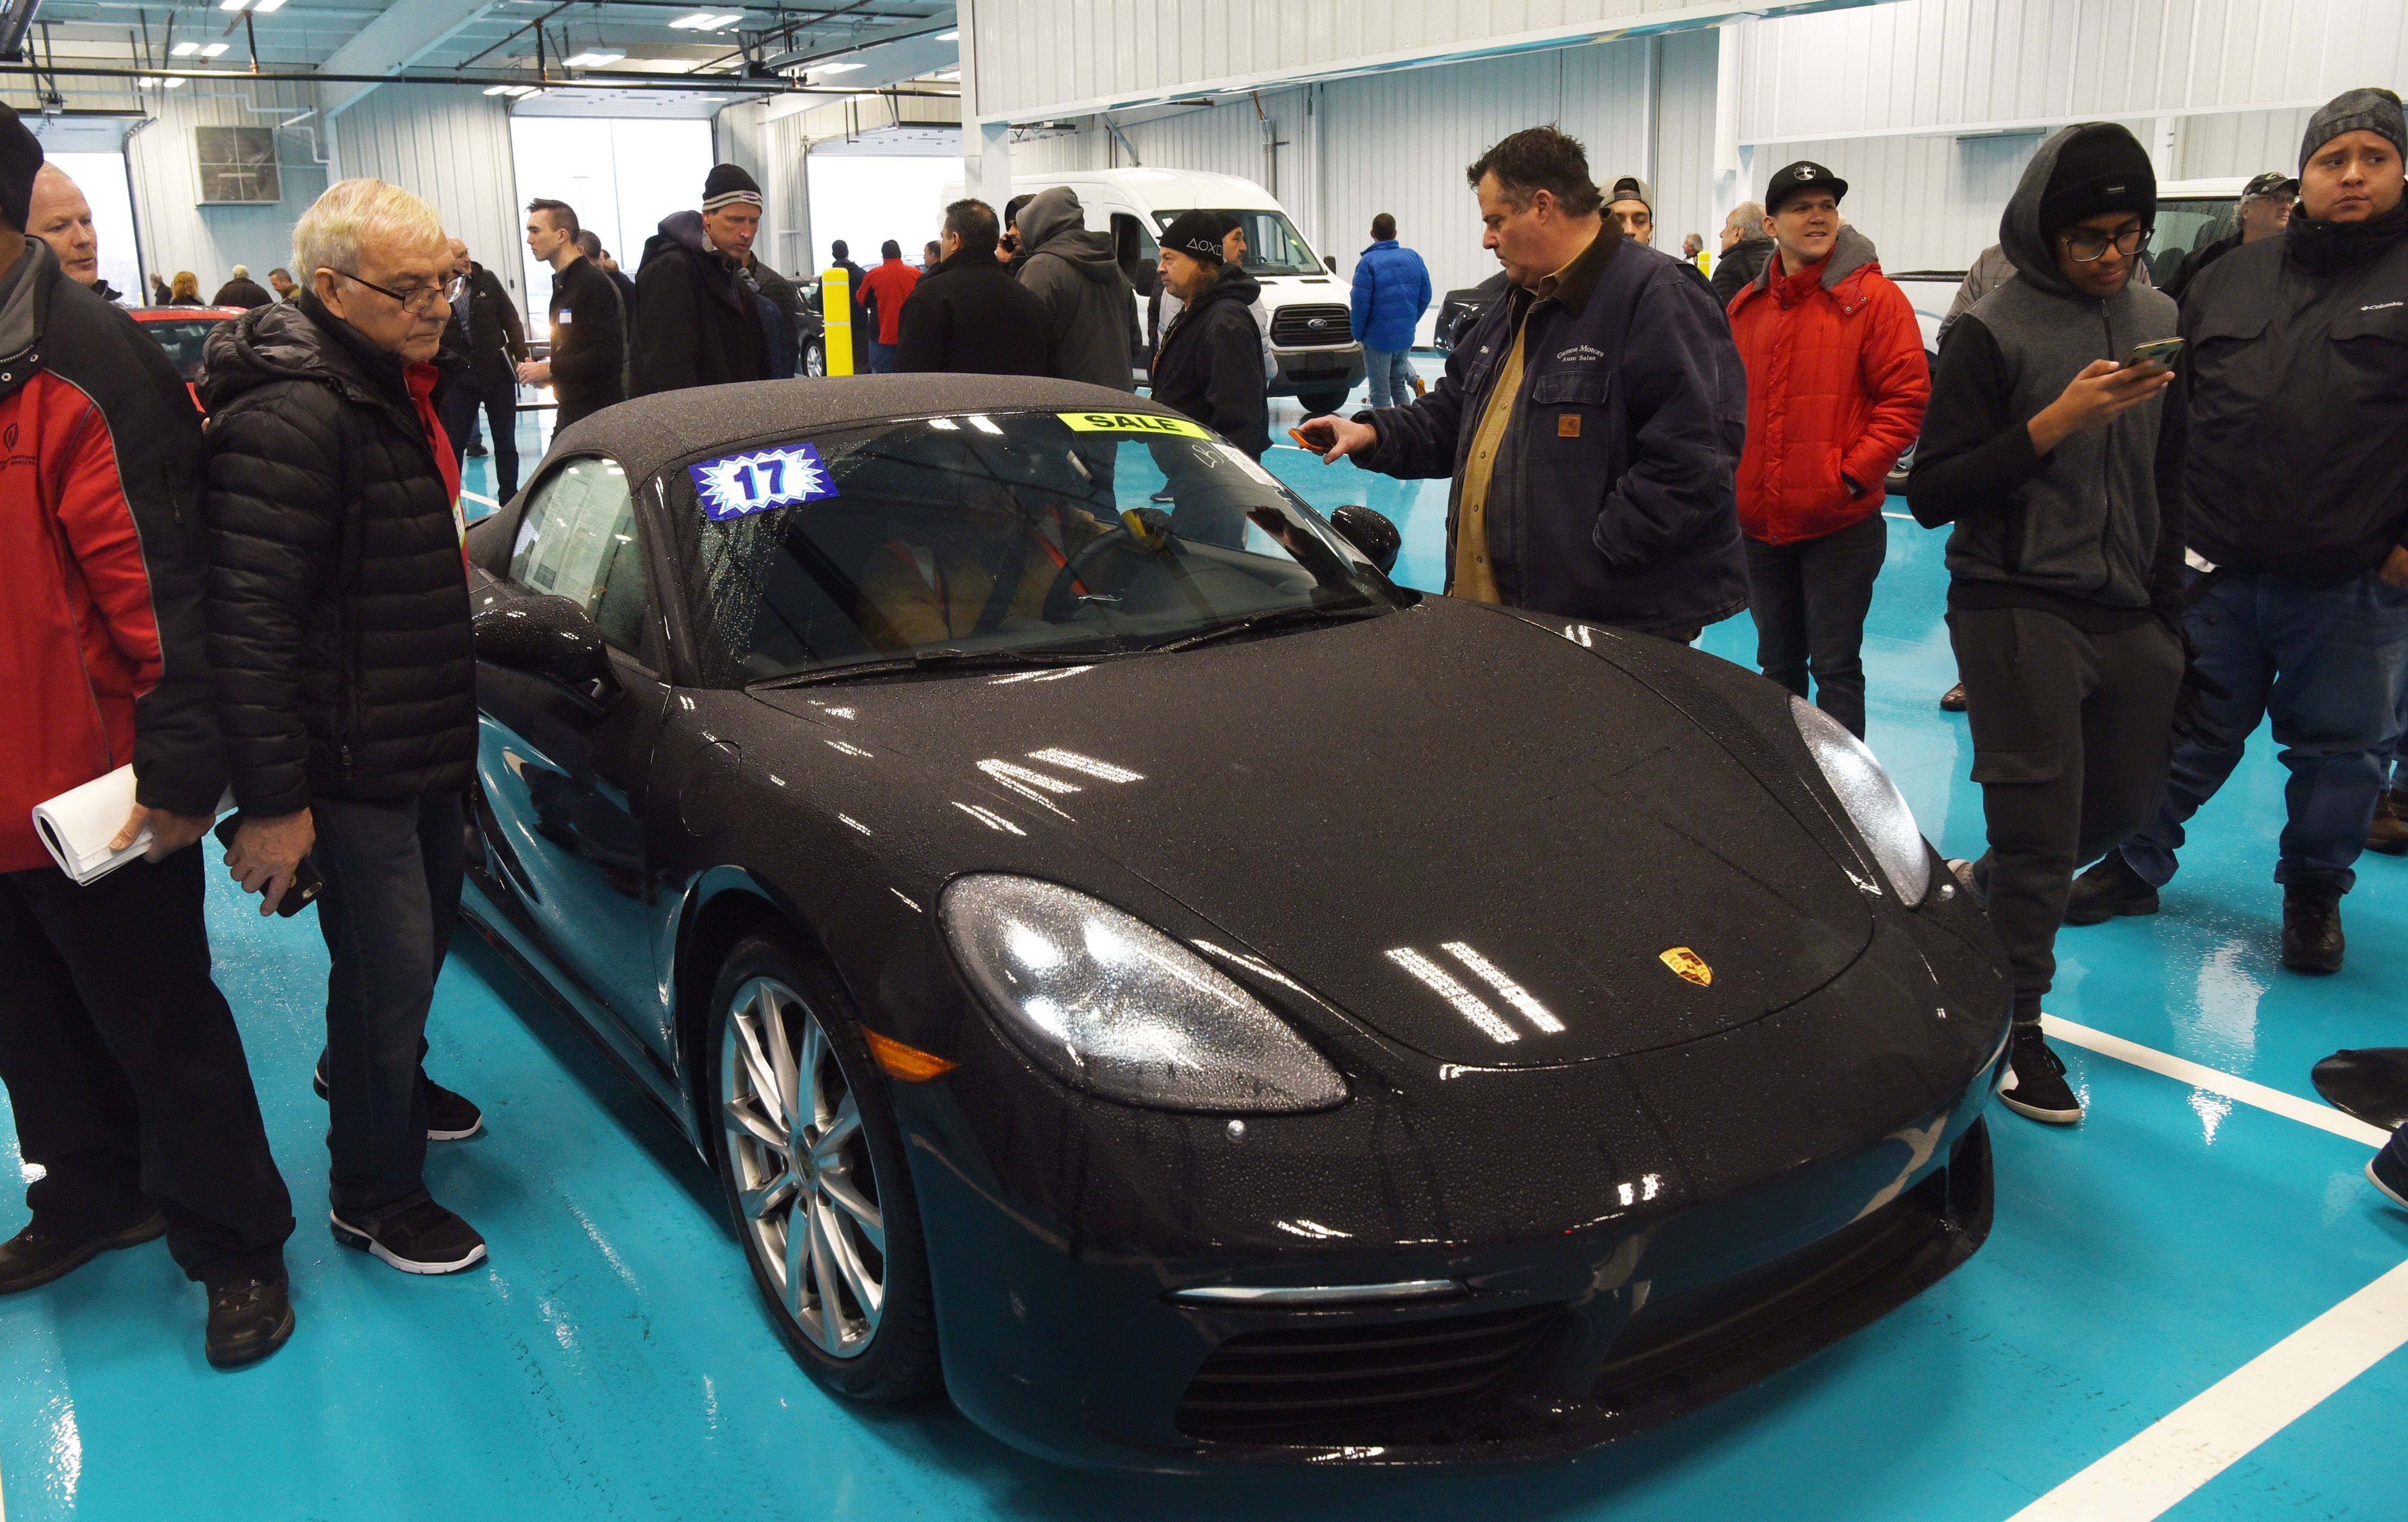 A 2017 Porsche 718 Boxter is among the 2,000 cars being sold during Friday's grand opening of the Adesa Chicago vehicle auction facility in Hoffman Estates.